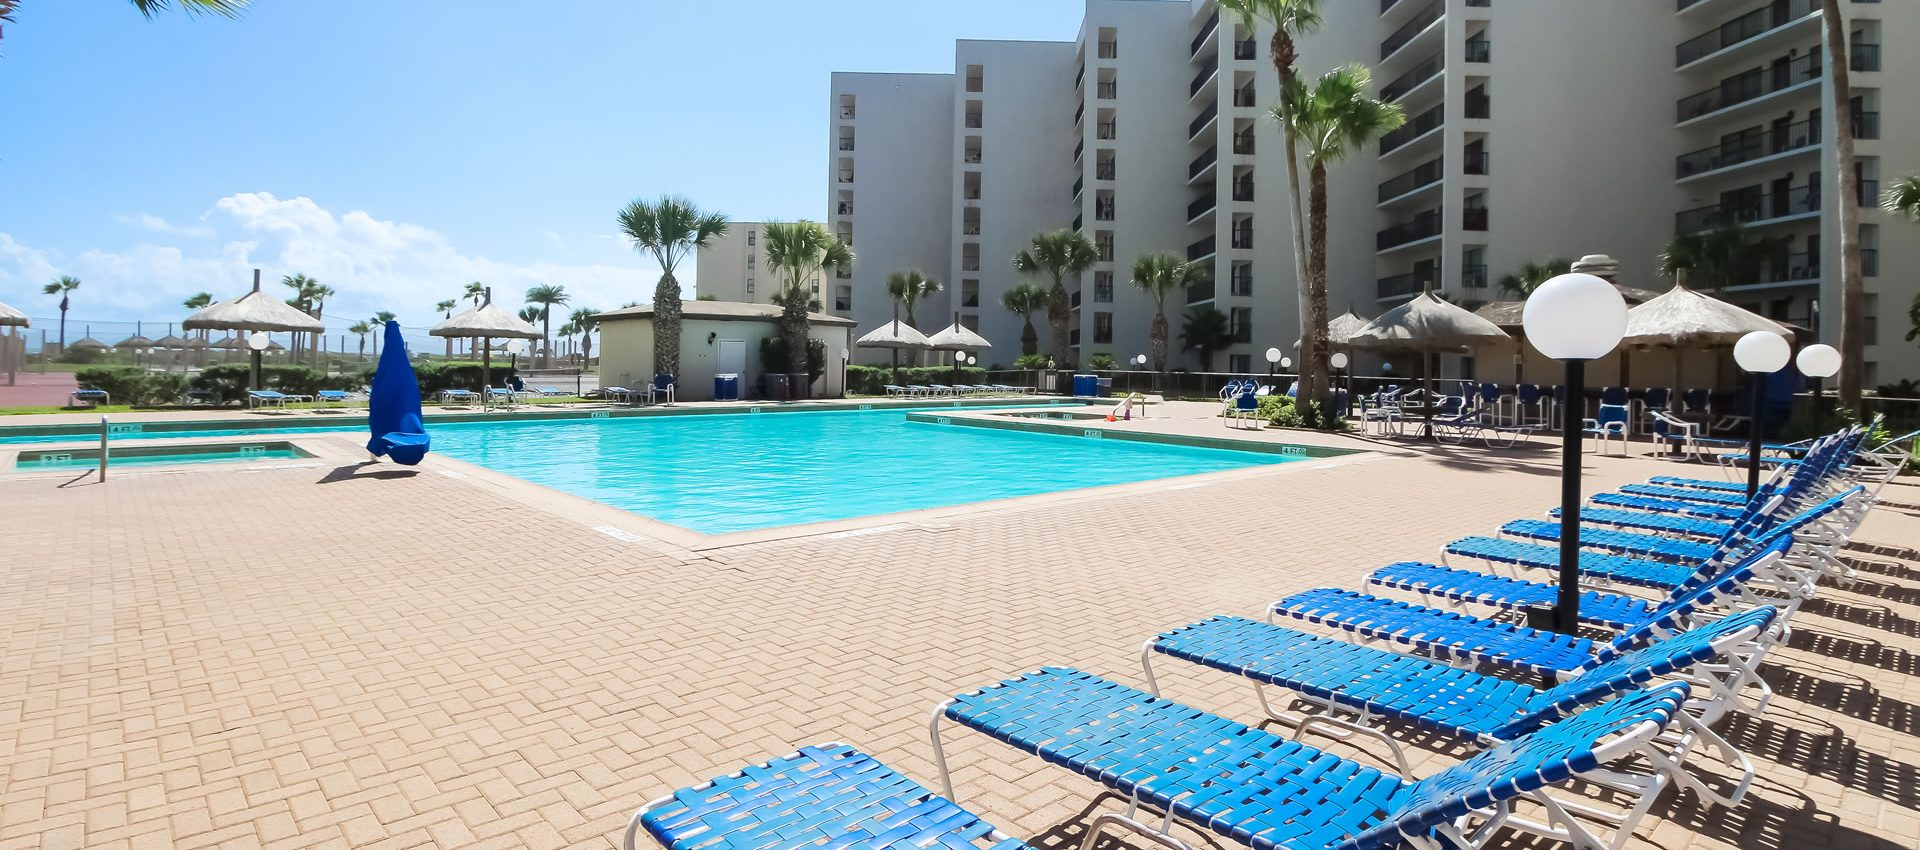 Vacation Rentals & Timeshare in South Padre Island, Texas